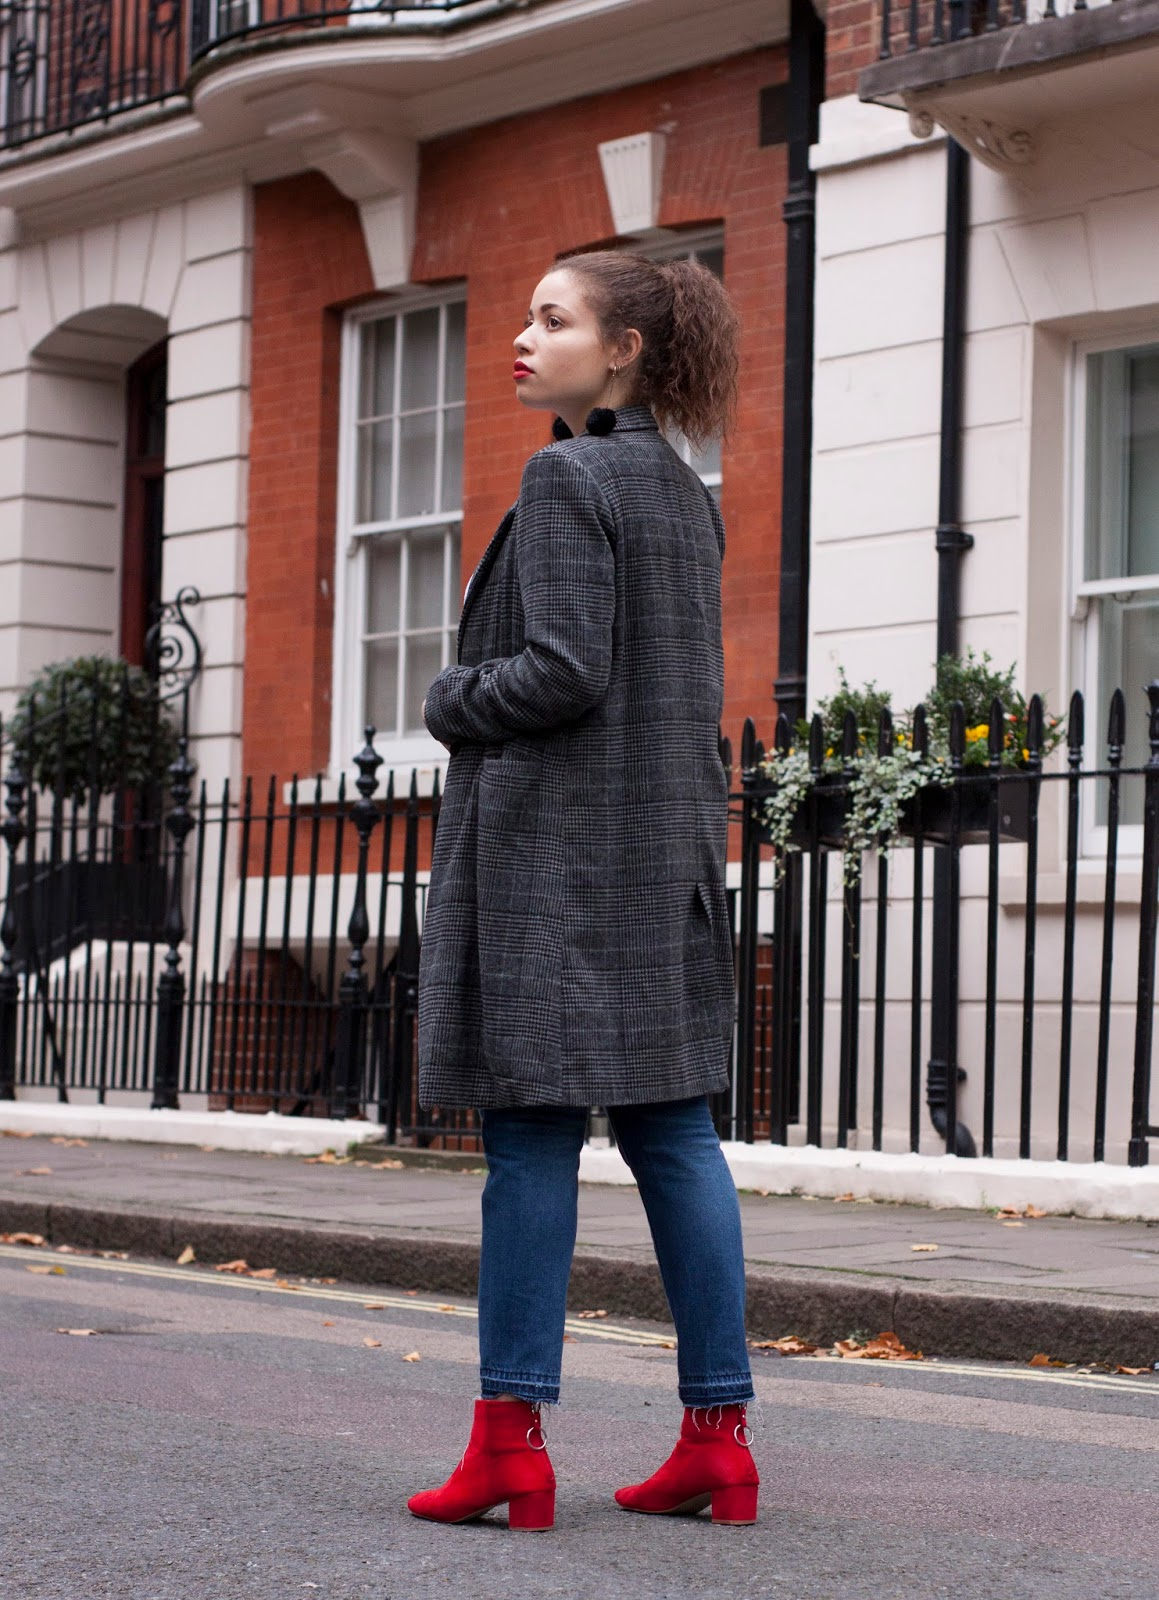 Eboni wearing grey check pretty little thing coat with red boots